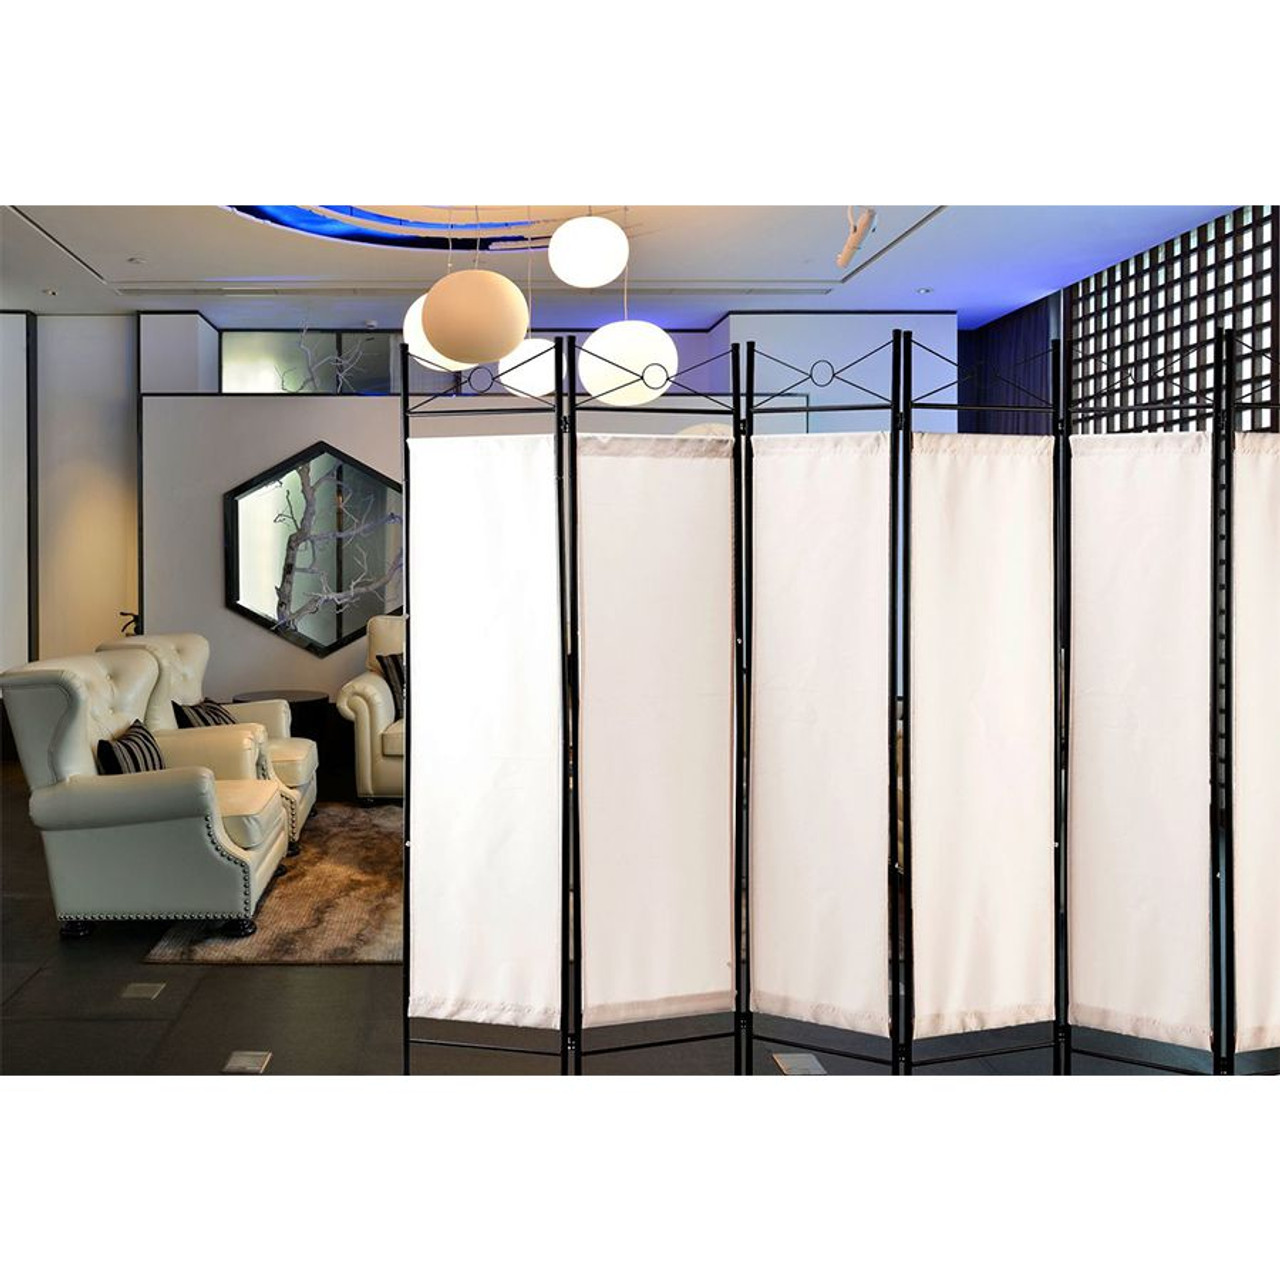 Metal Room Divider Privacy Screen with Removable Fabric  White Color